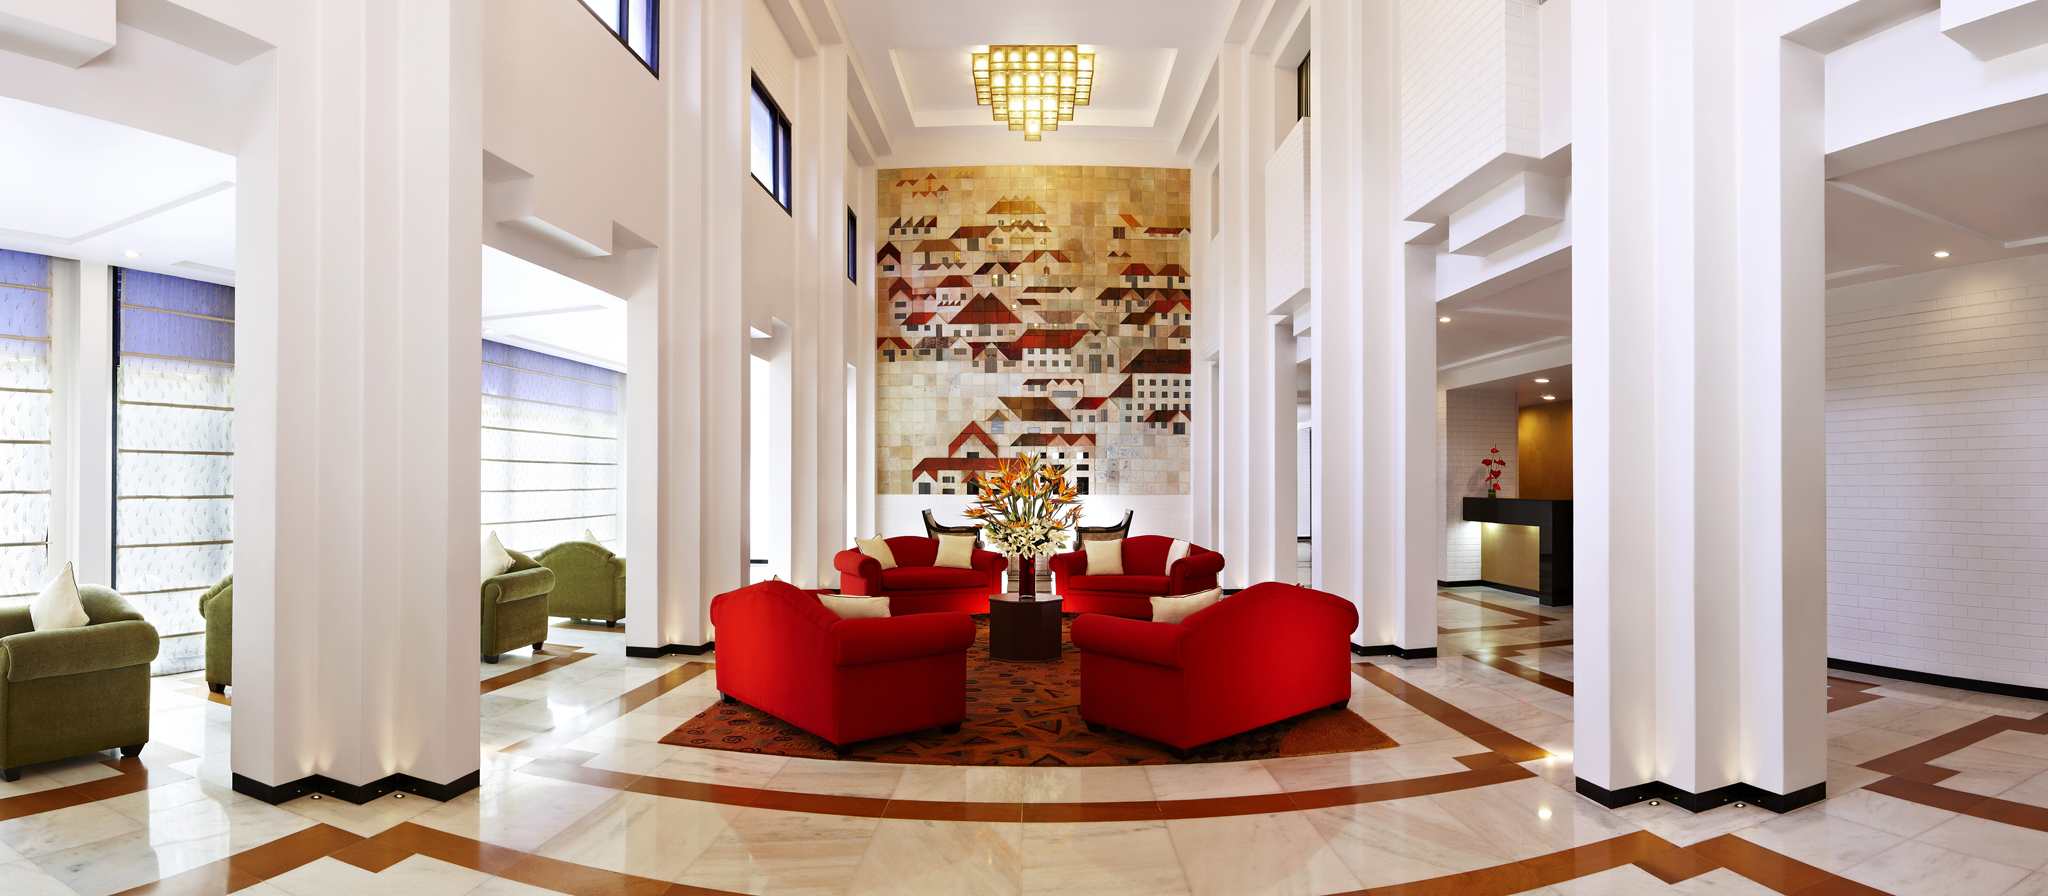 Palatial Lobby at The Gateway Hotel Old Port Road Mangalore